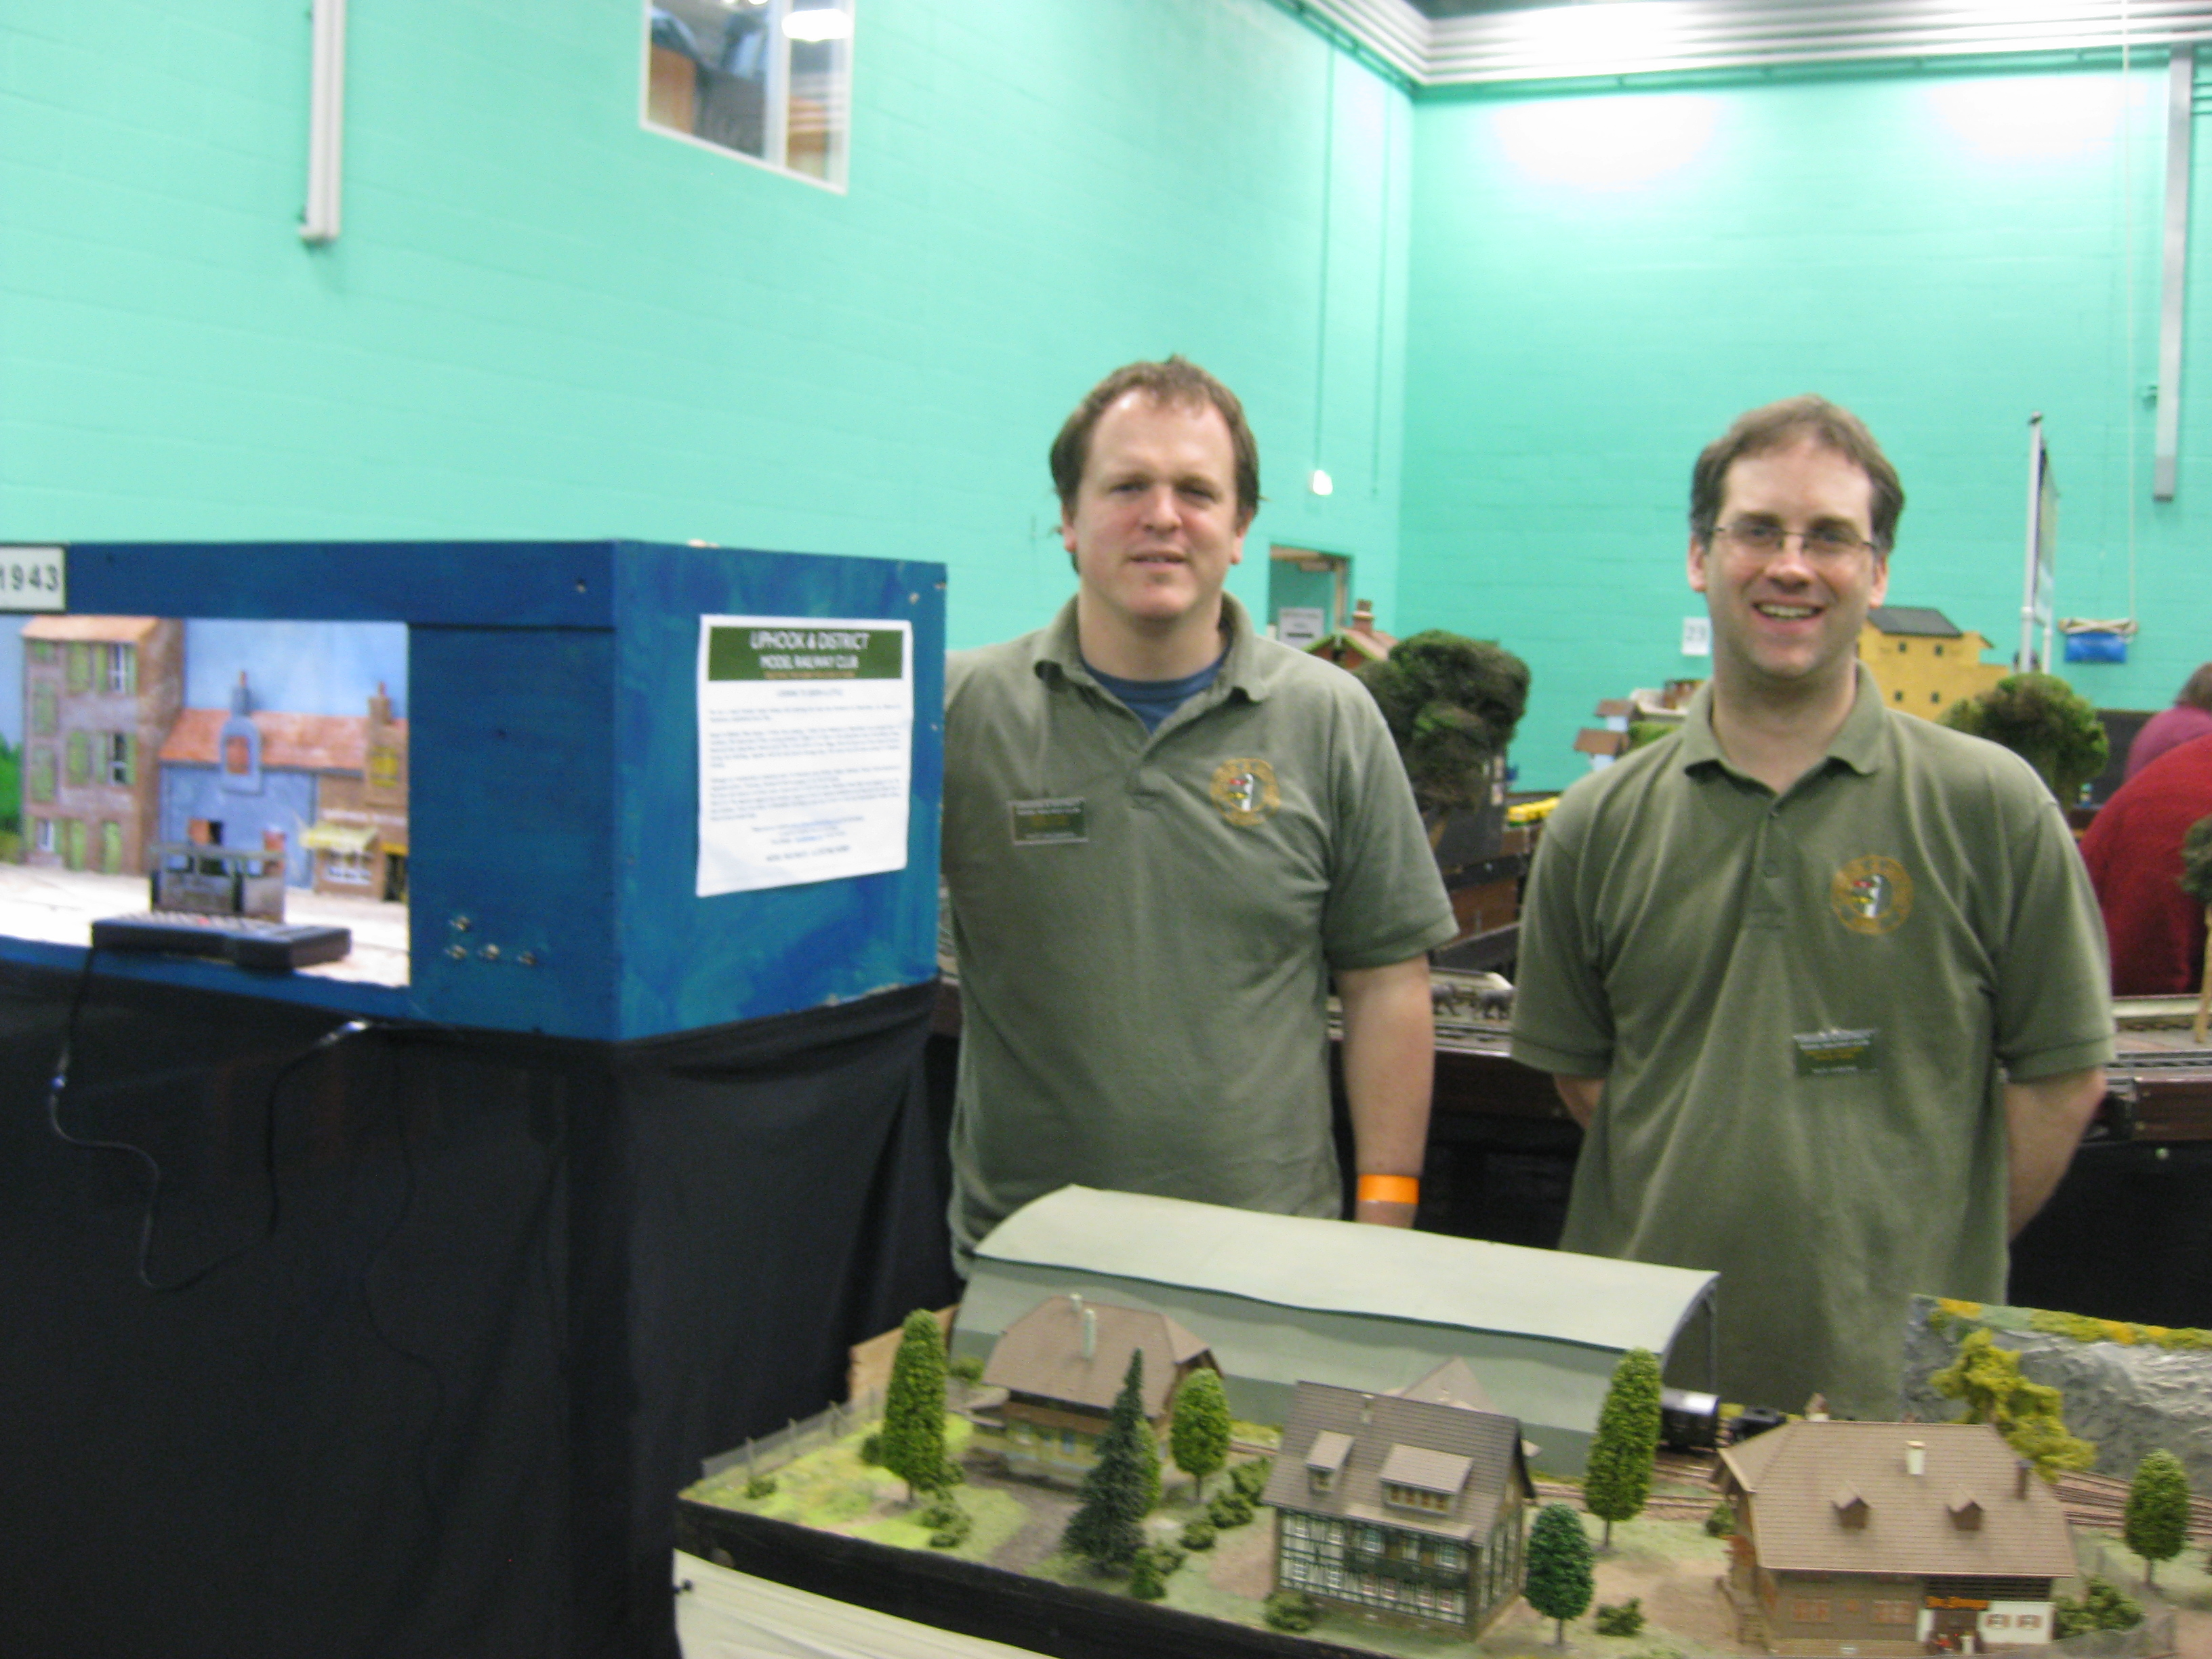 Members of Liphook & District MRC Matt Wildsmith(left) and Nick Harling standing with their respective layouts Nouvion 1943 & Uberernst at Midhurst Modellers Show 2016